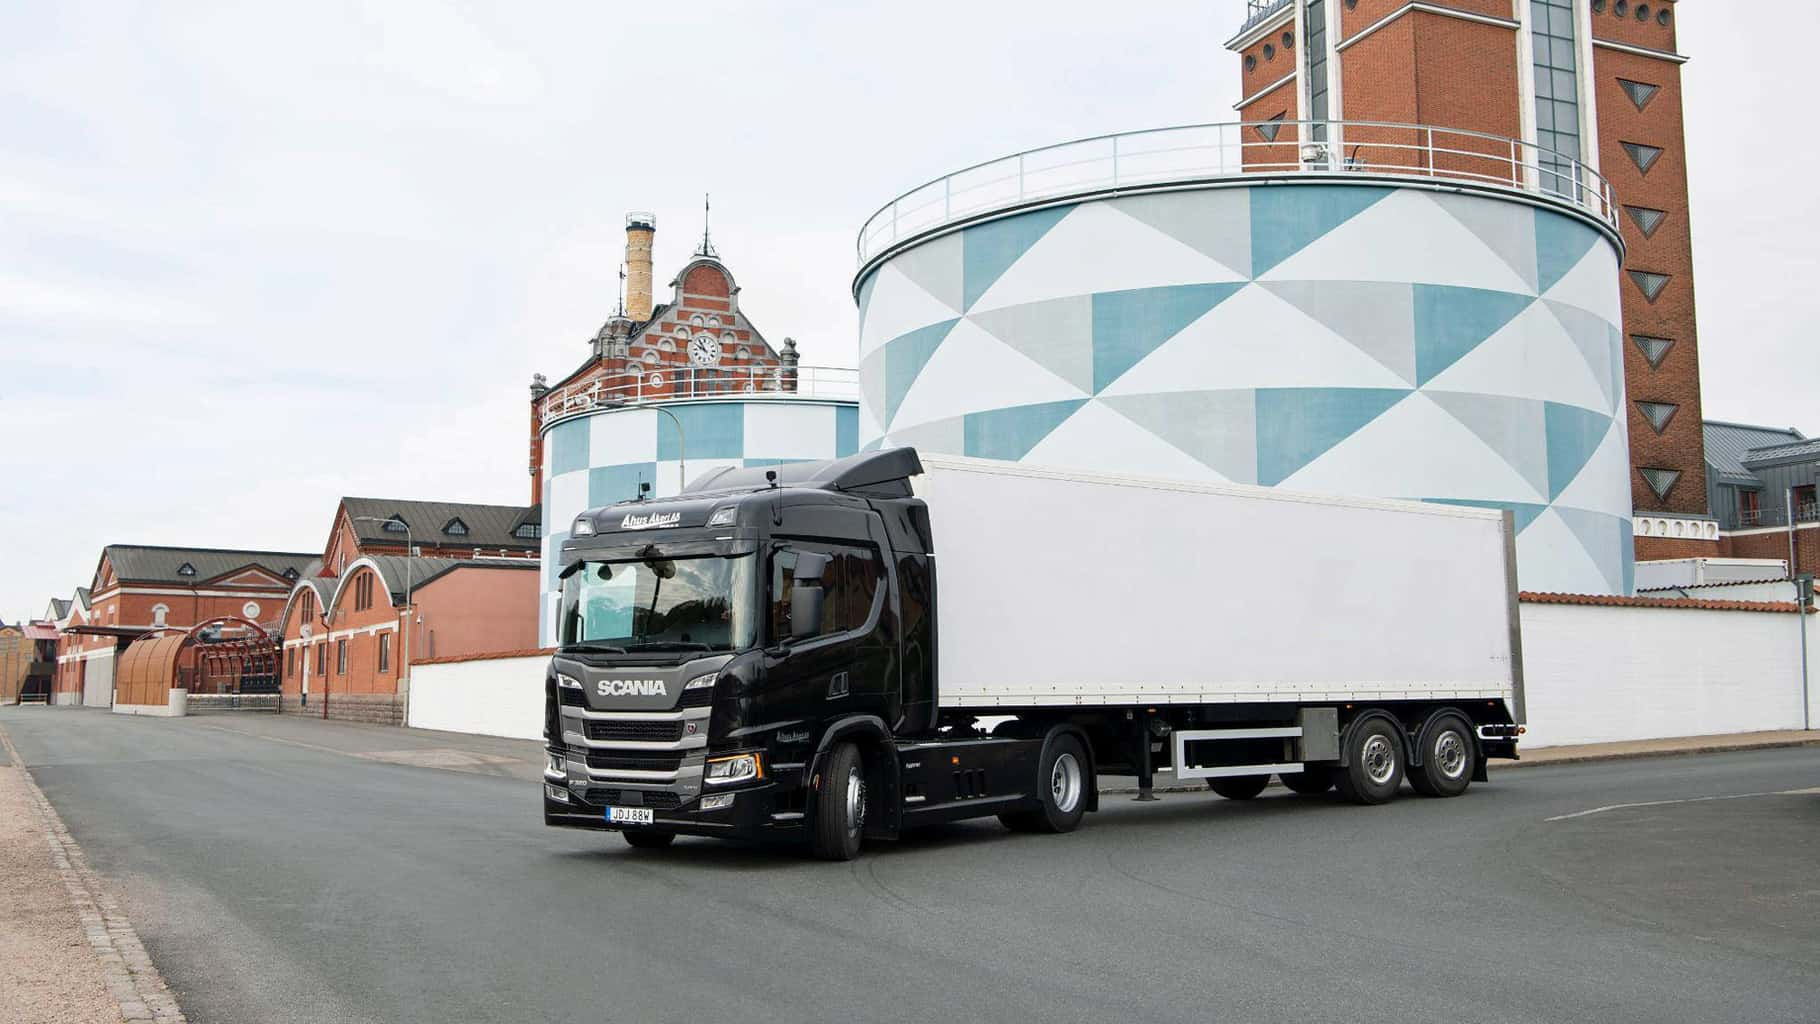 RIO democratizes digitalization by supporting small logistics companies (Photo: Facebook/Scania Group)